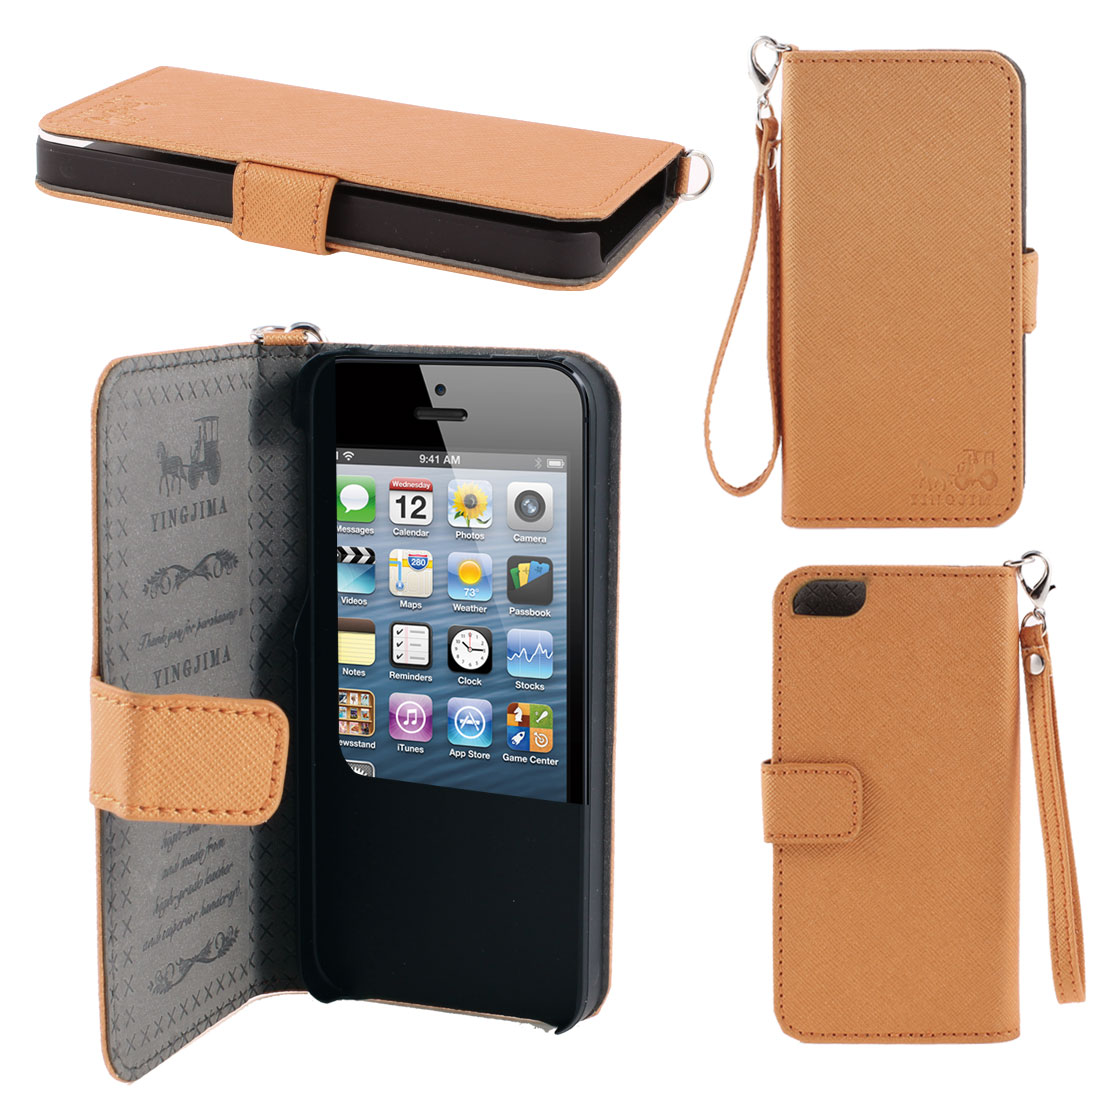 Orange Faux Leather Magnetic Flip Case Cover Pouch Holder for iPhone 5 5G 5th